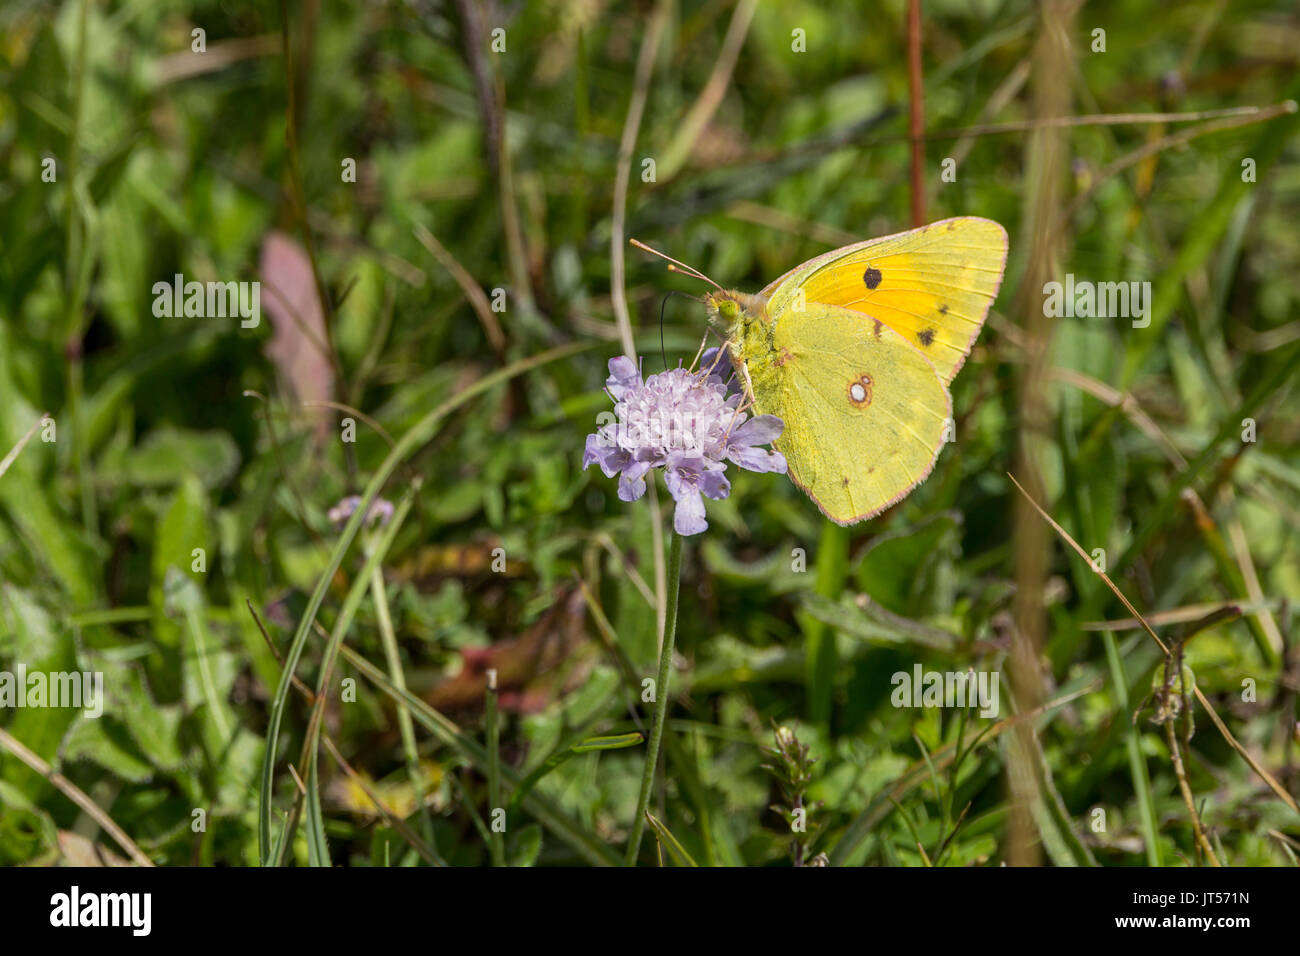 Clouded yellow or Colias croceus butterfly in landscape format with copy space on purple plant feeding on nector - Stock Image